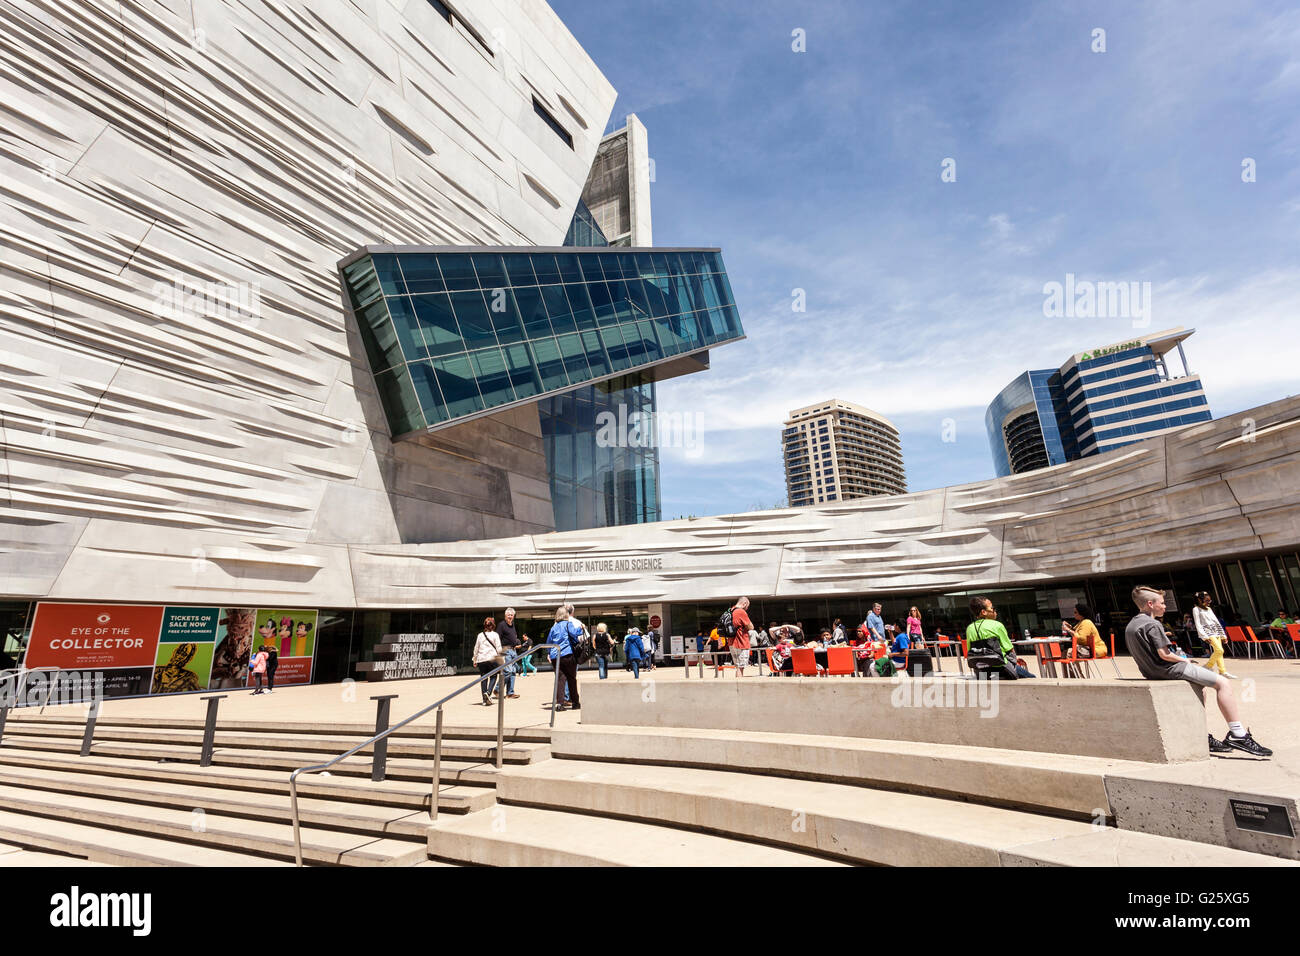 The Perot Museum of Nature and Science in Dallas, TX, USA - Stock Image